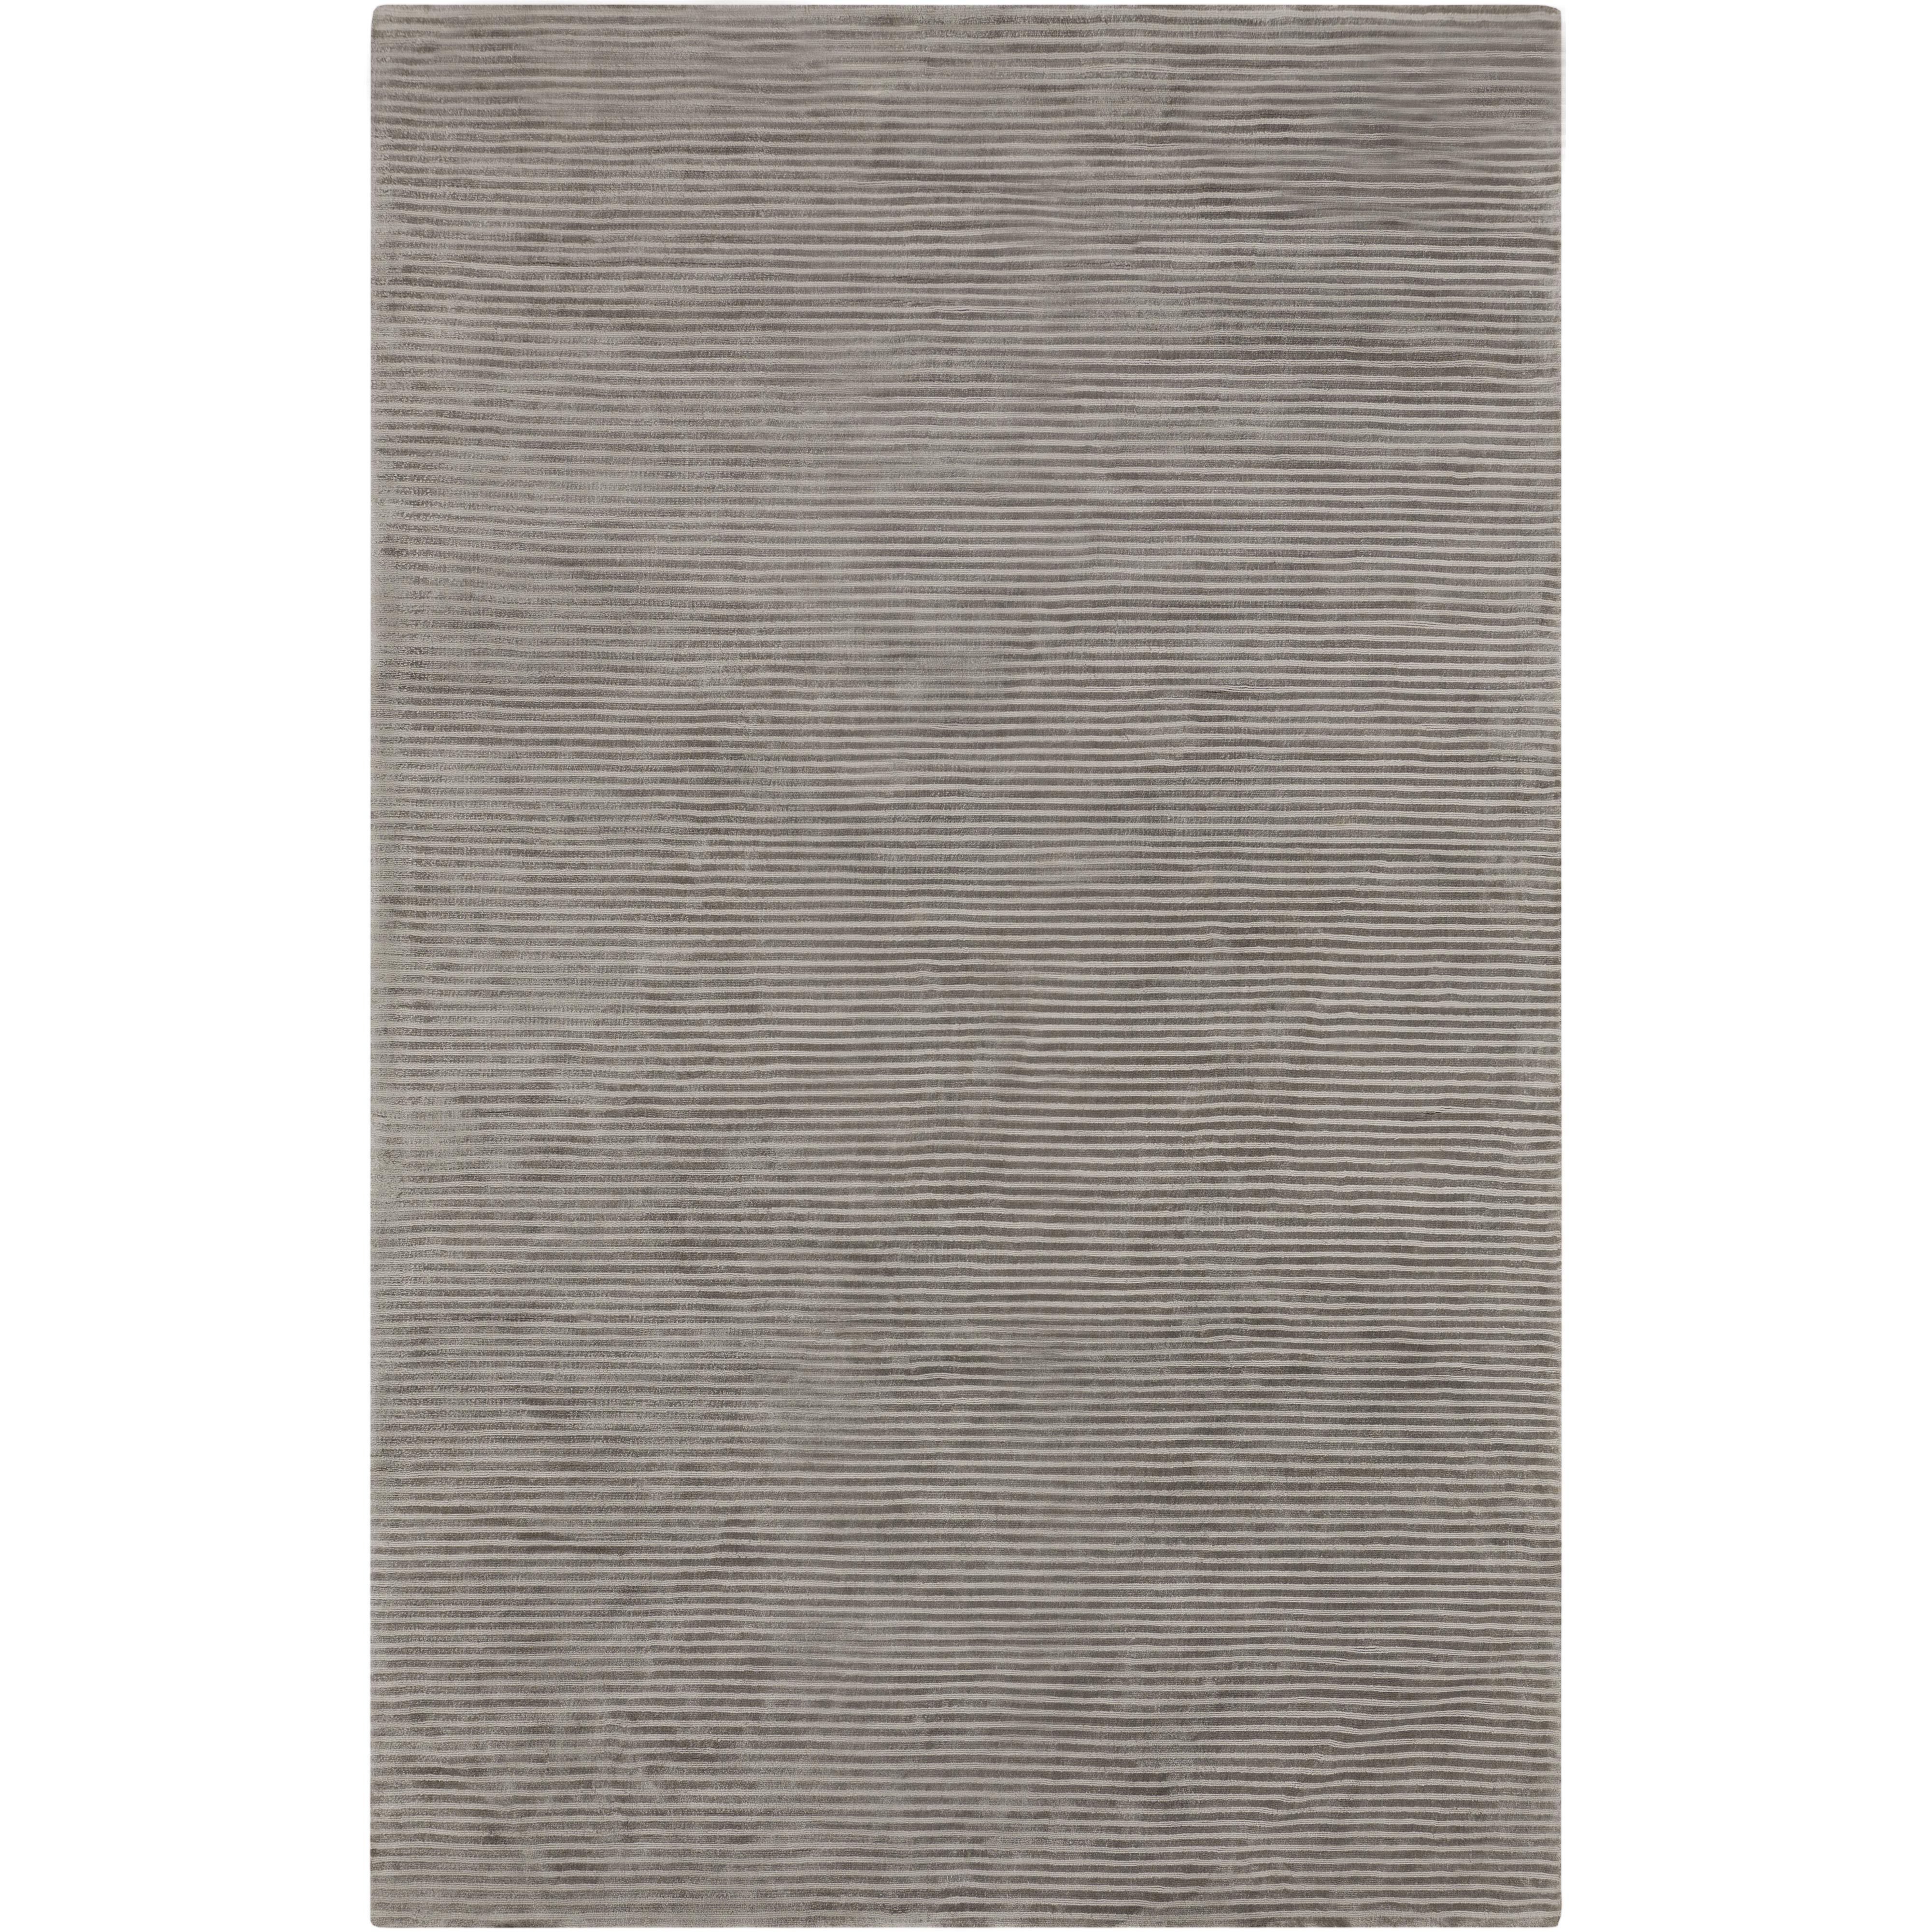 Graphite 2' x 3' by Ruby-Gordon Accents at Ruby Gordon Home